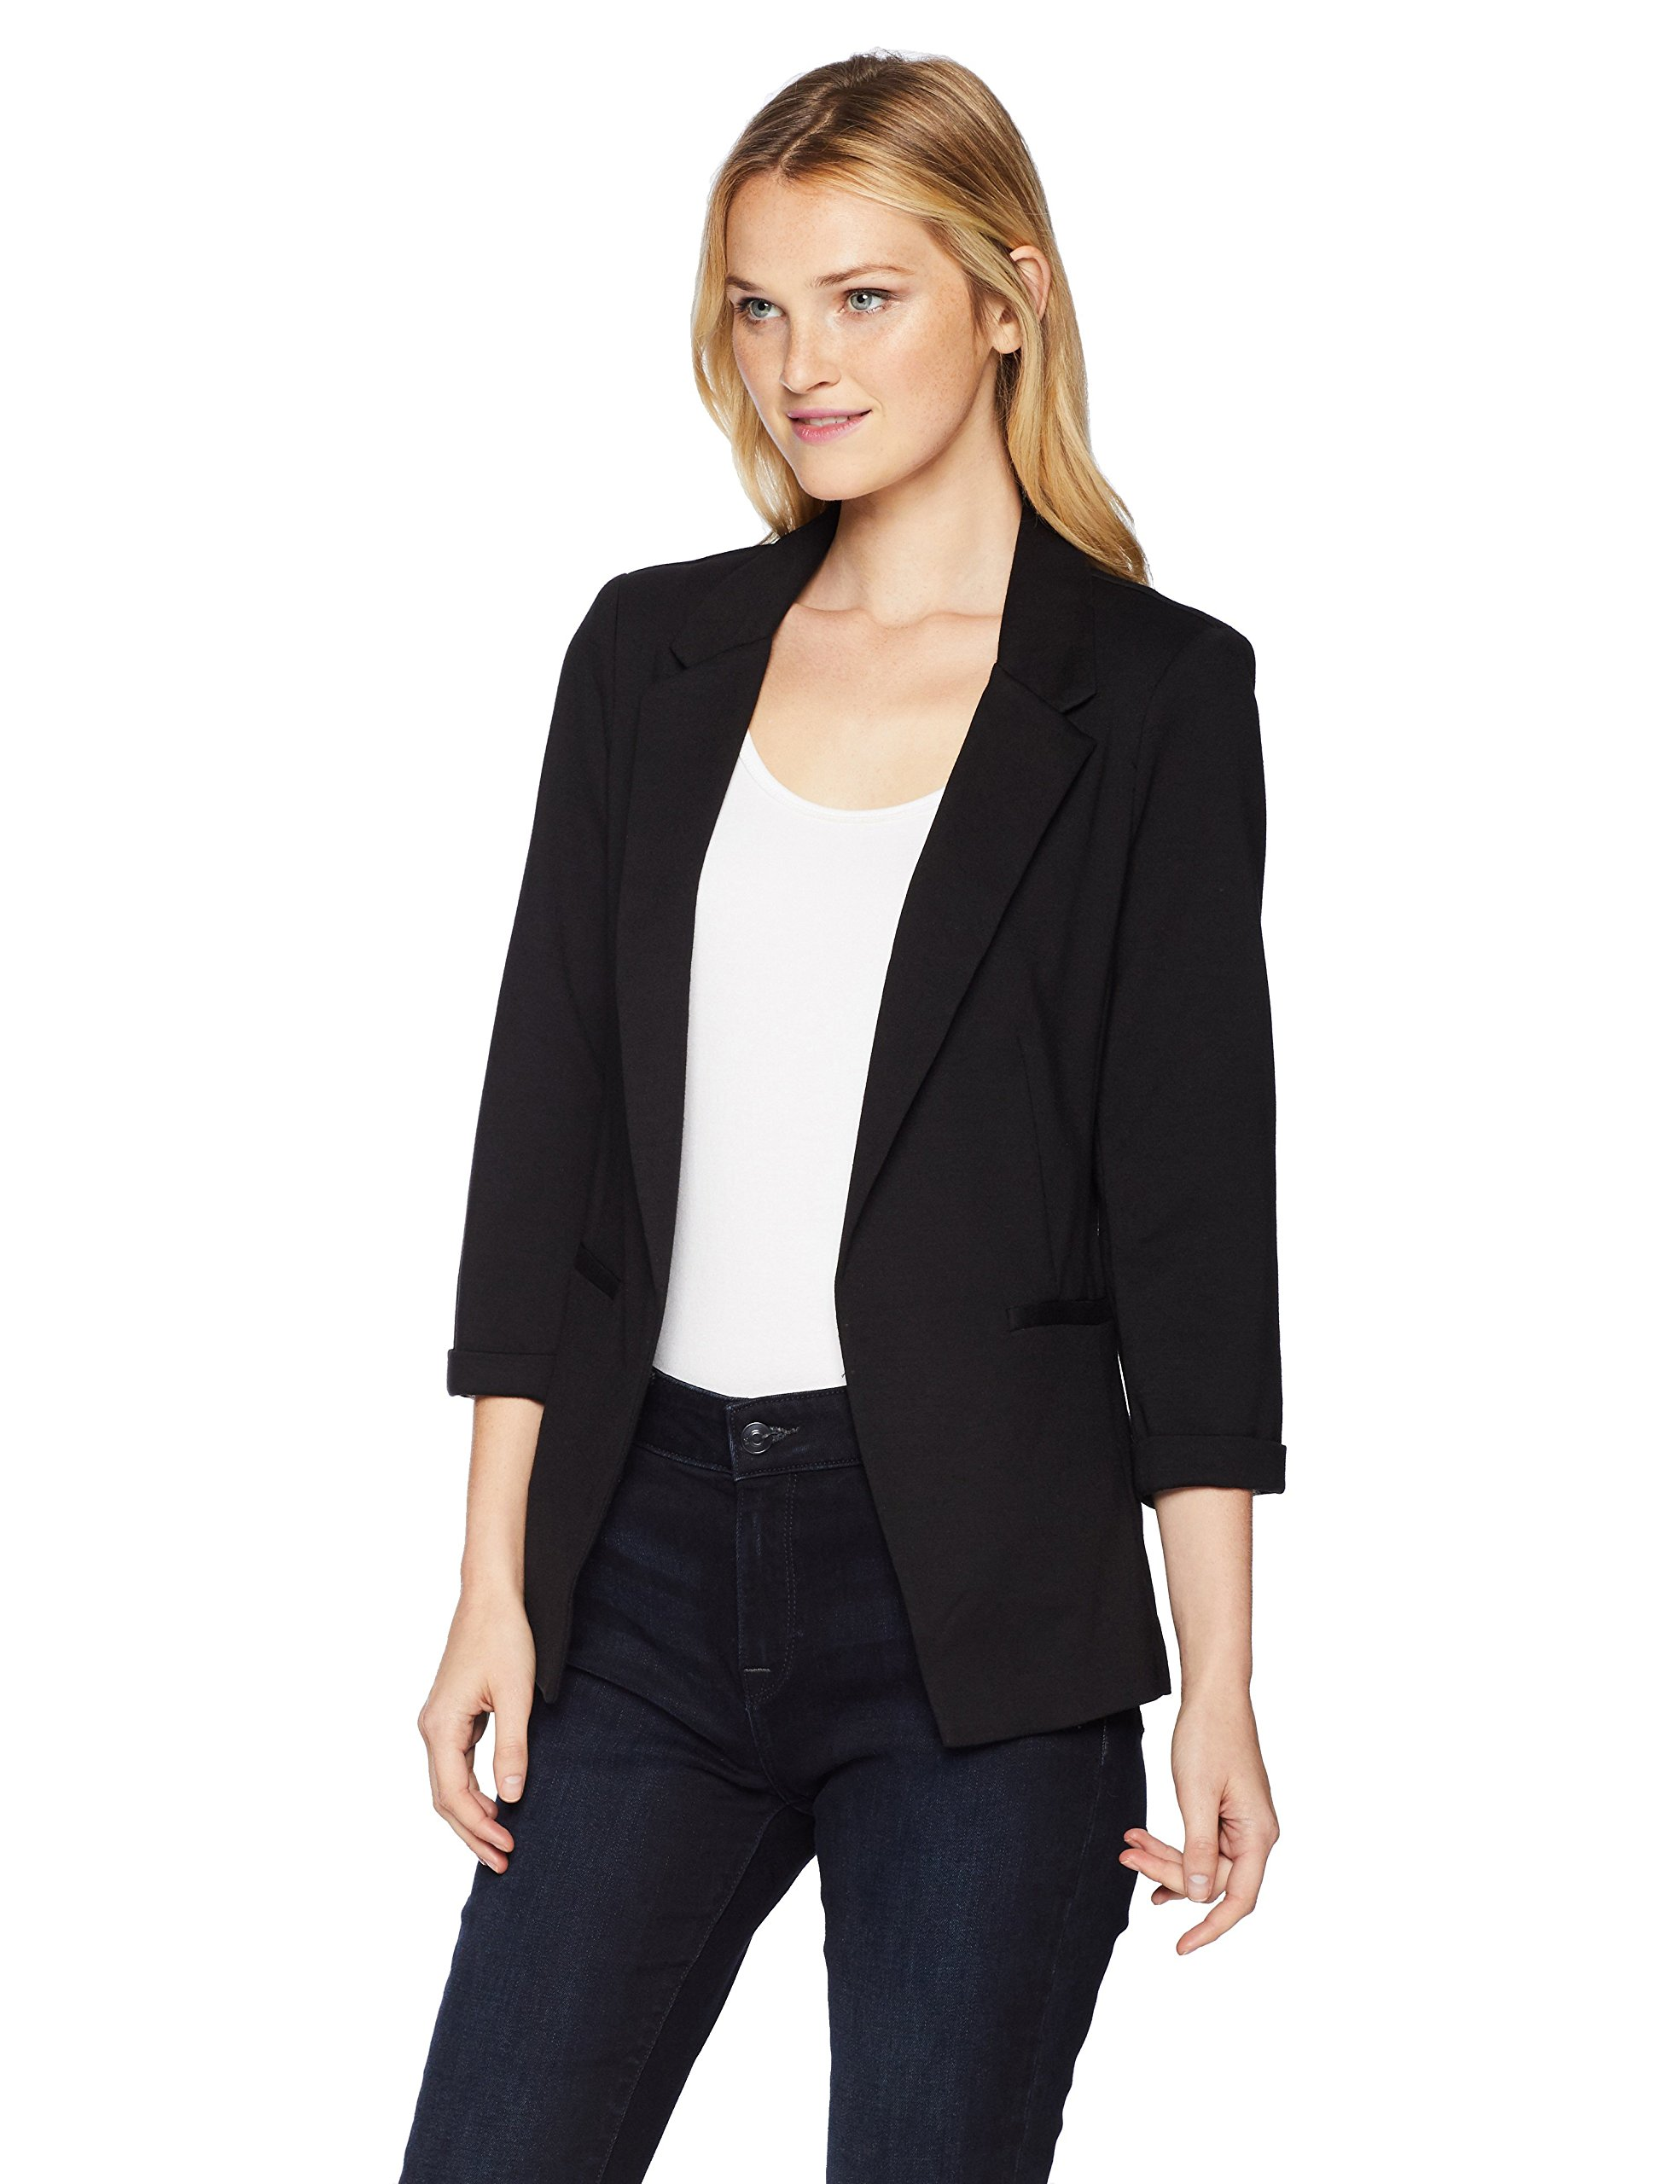 A. Byer Junior's Young Woman's Teen Knit Ponte Blazer, Black, S